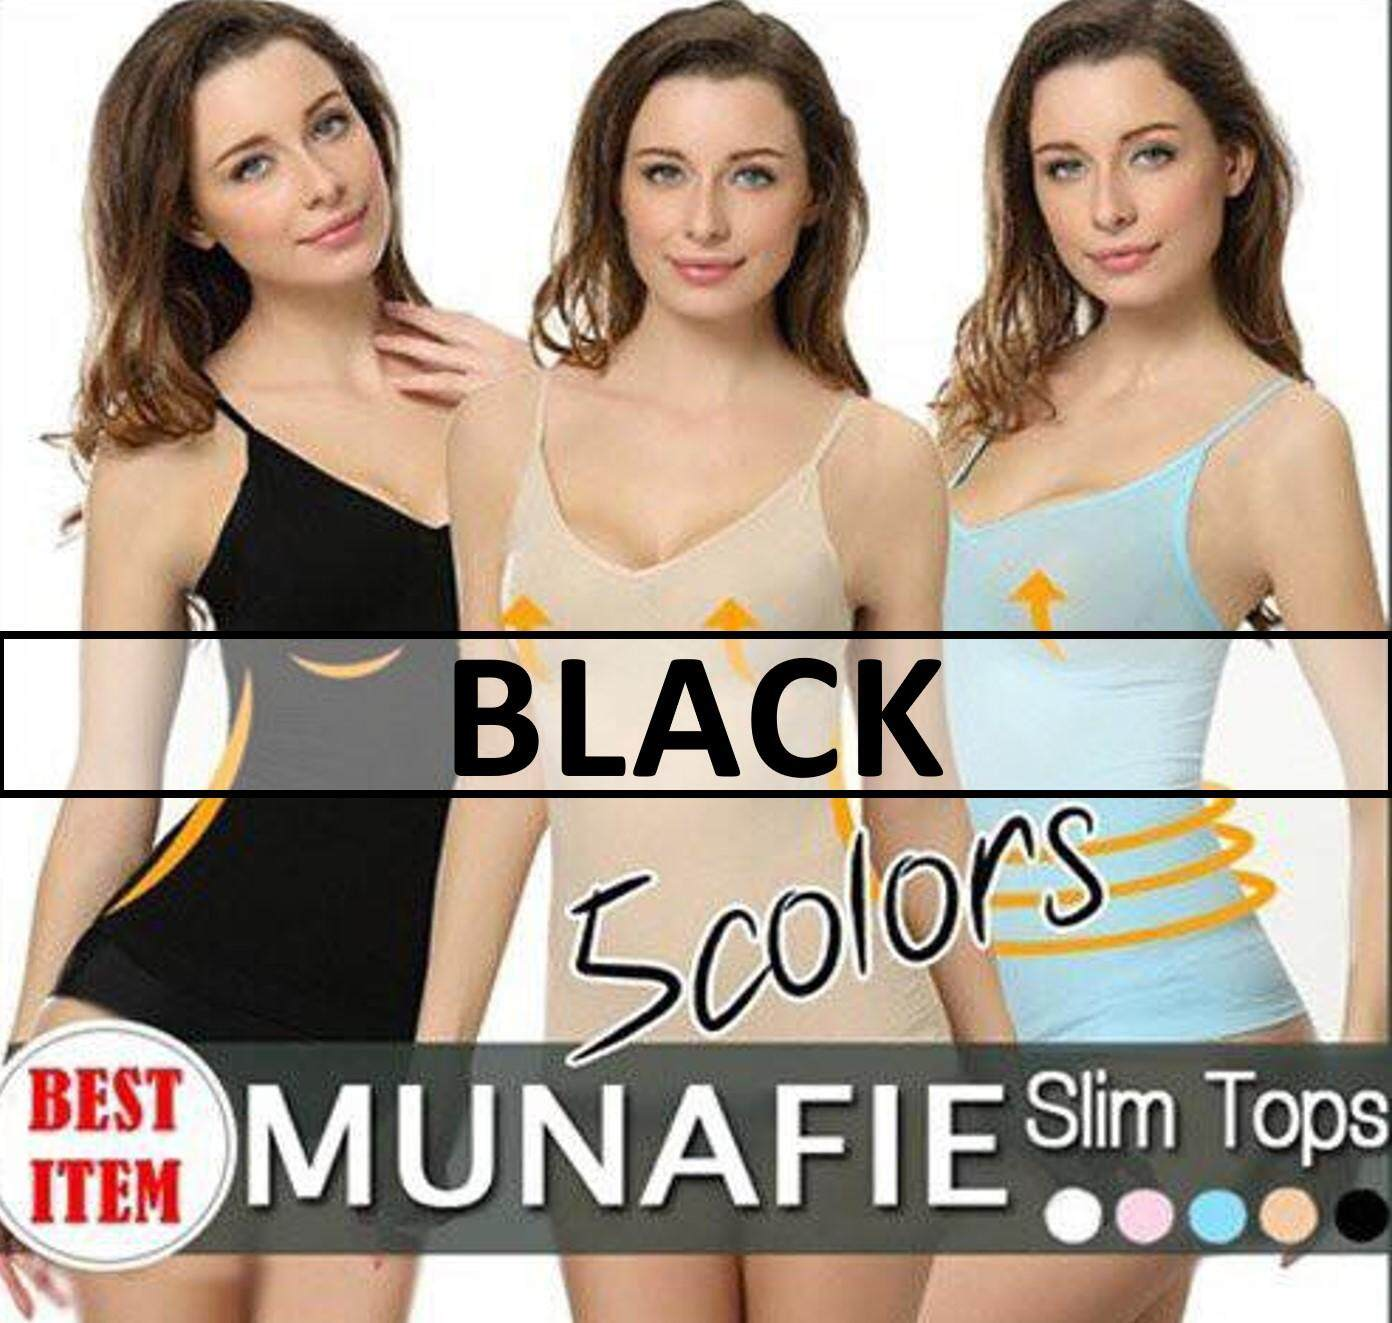 labelle-NEW MUNAFIE Premium Fat Burning Shapewear Slimming Singlet Top Vest  (5 Color Available 79b40ce4a9